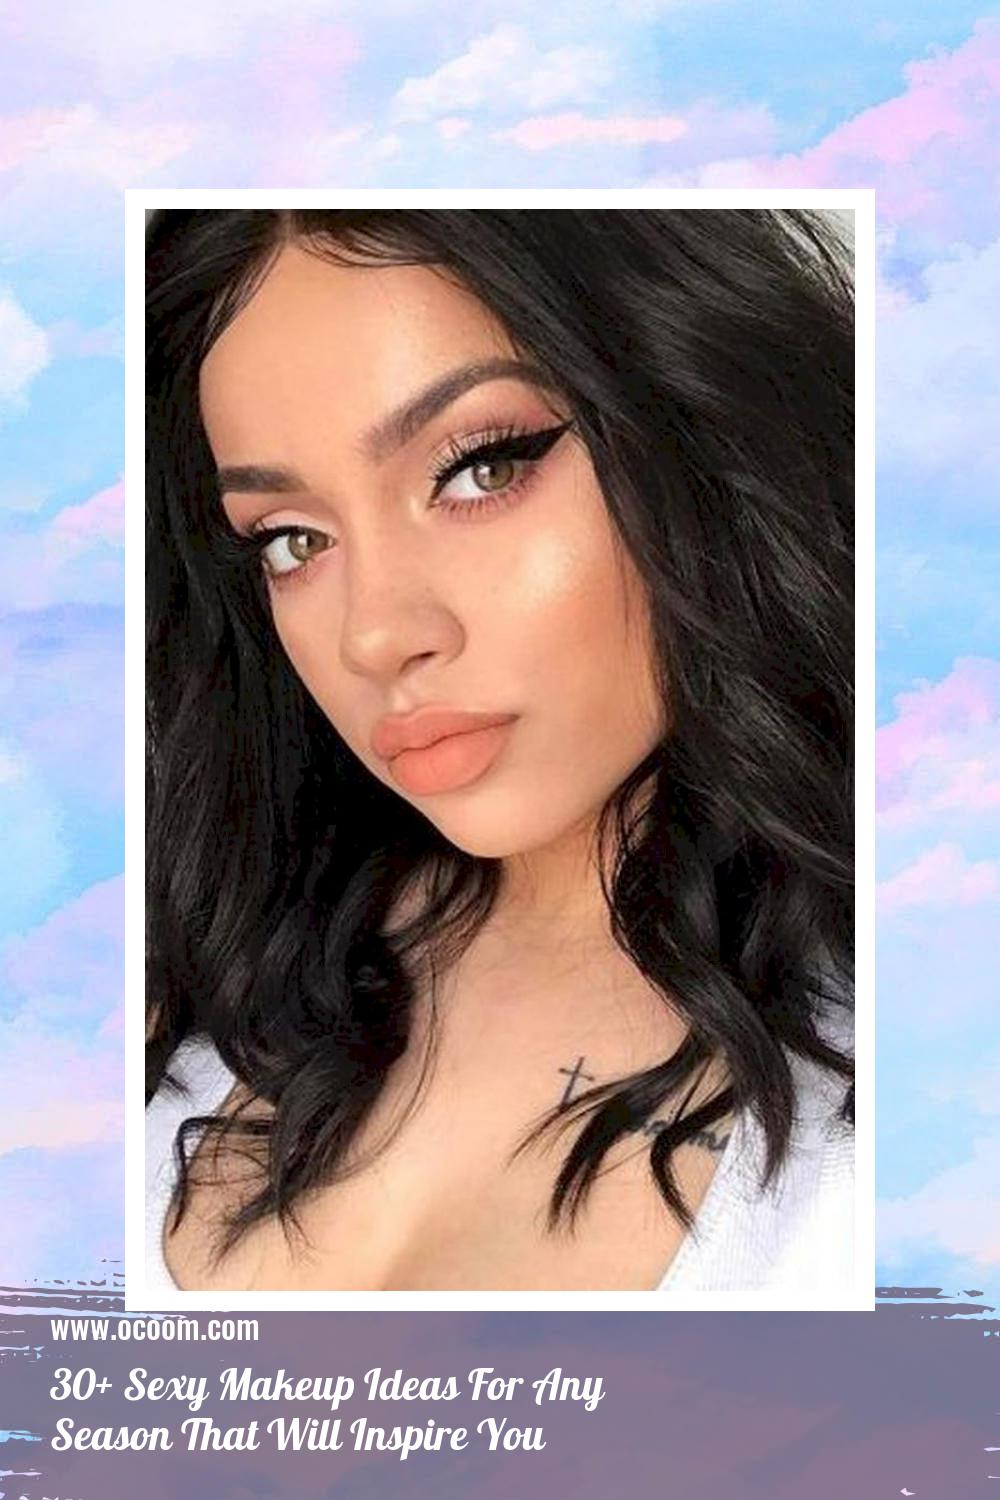 30+ Sexy Makeup Ideas For Any Season That Will Inspire You 10